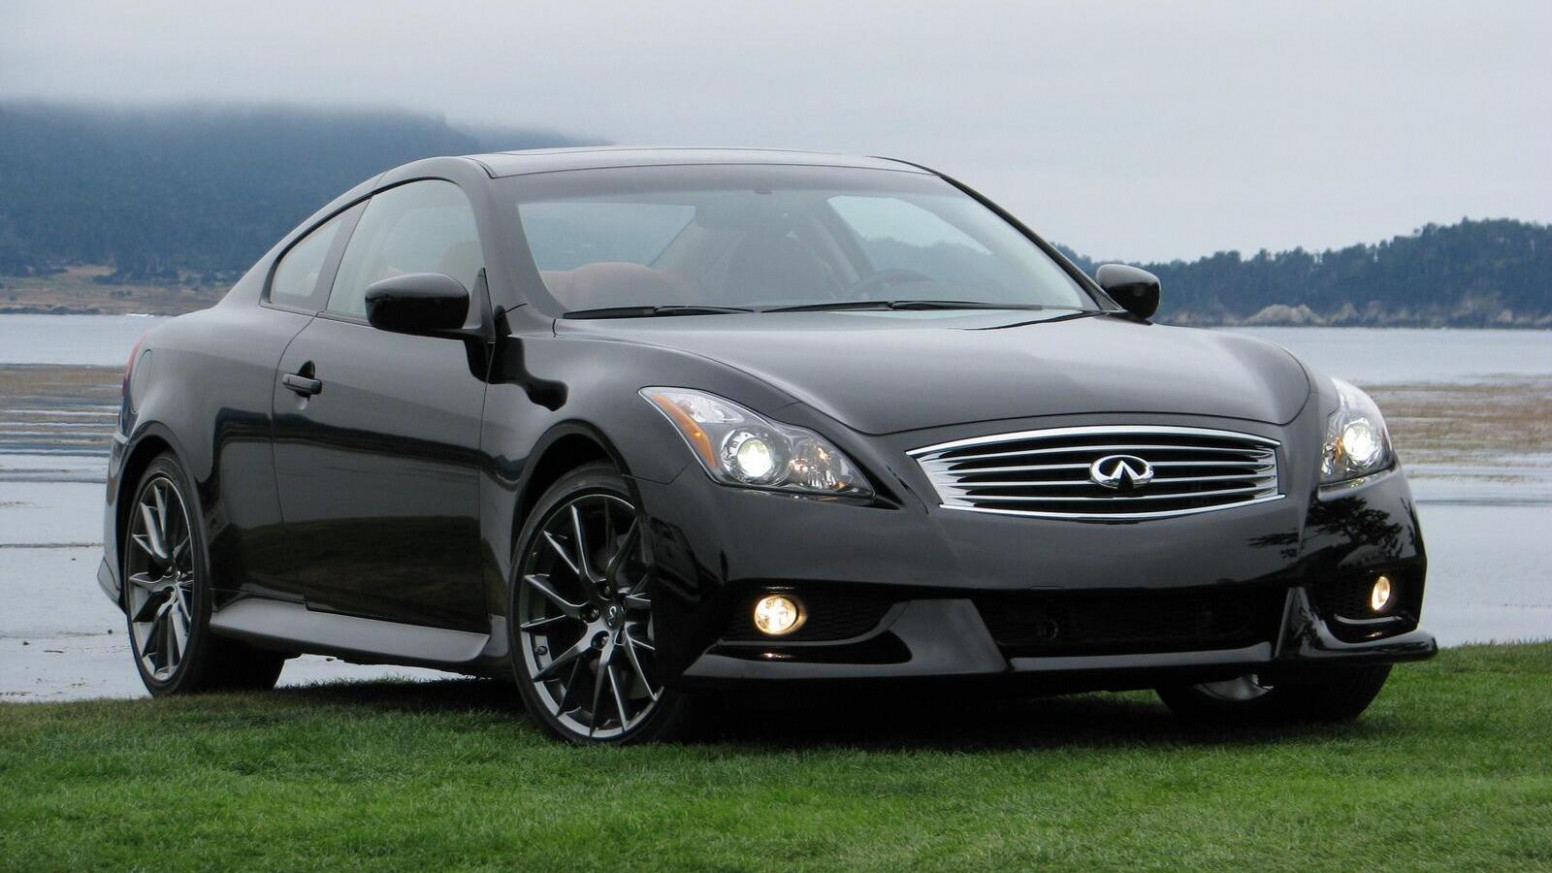 New Model and Performance 2022 Infiniti Q60 Coupe Ipl